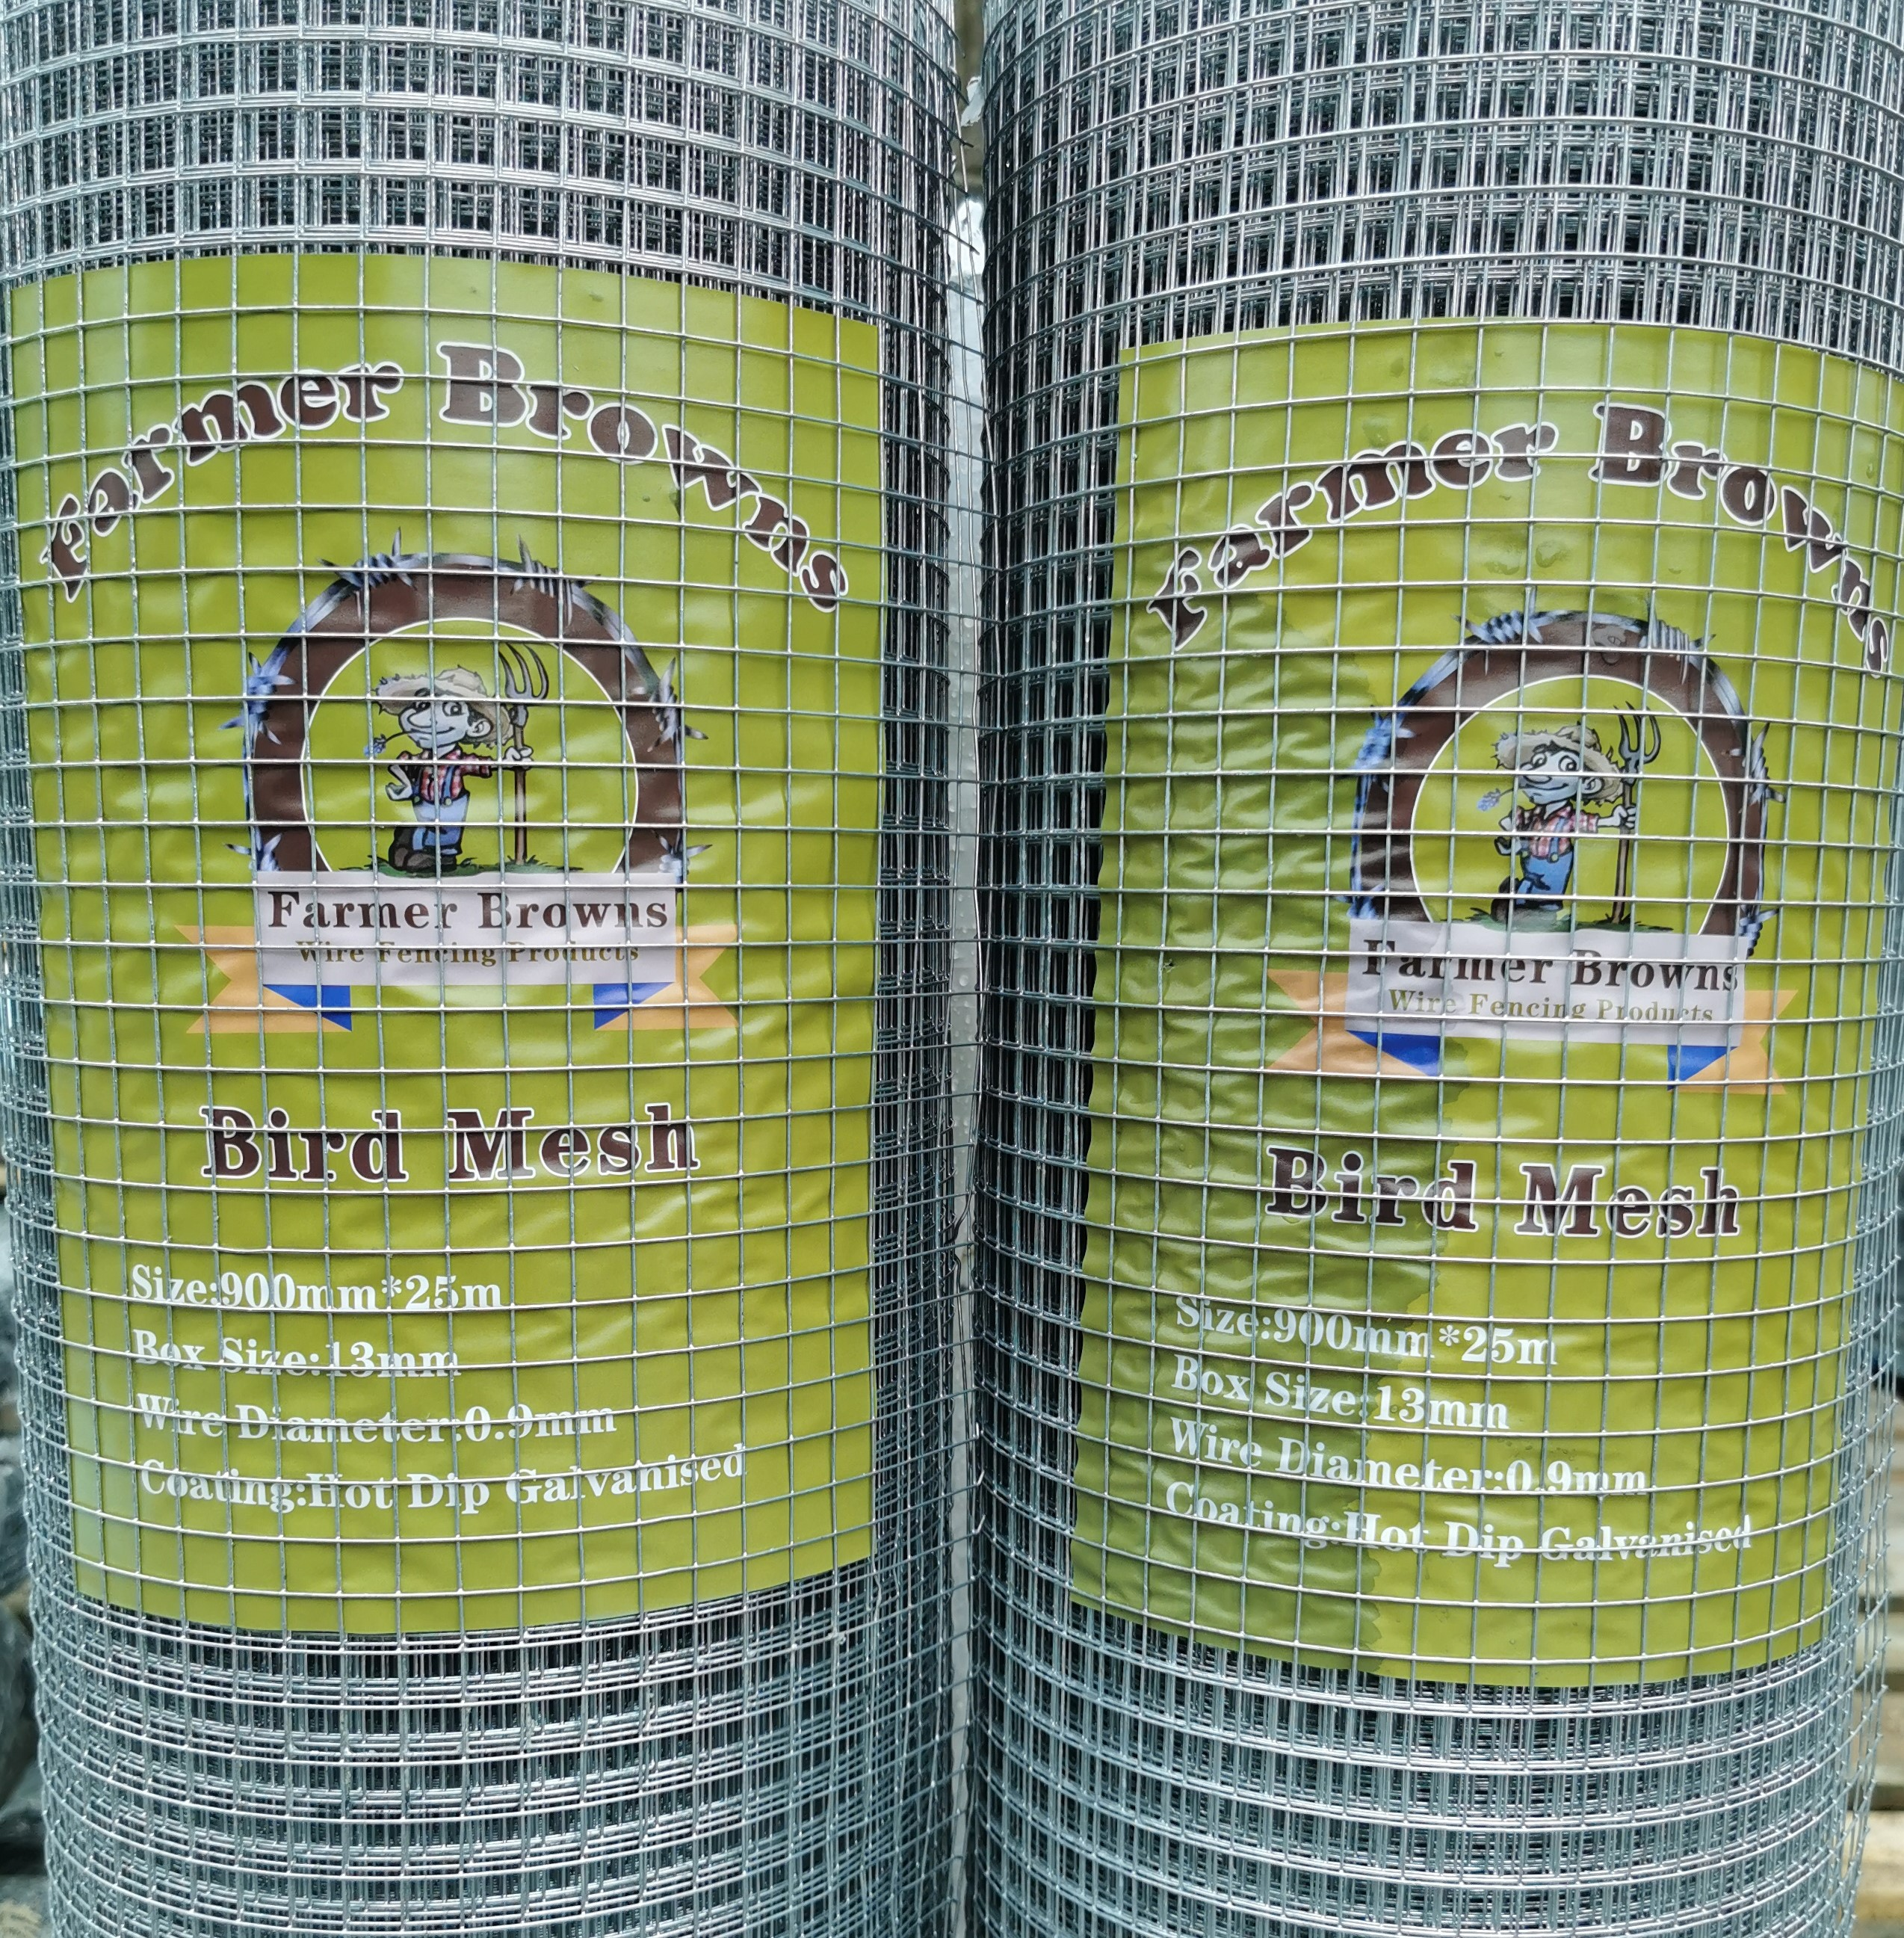 Bird Mesh 900mm x 25m Roll Box Size 13mm Hole